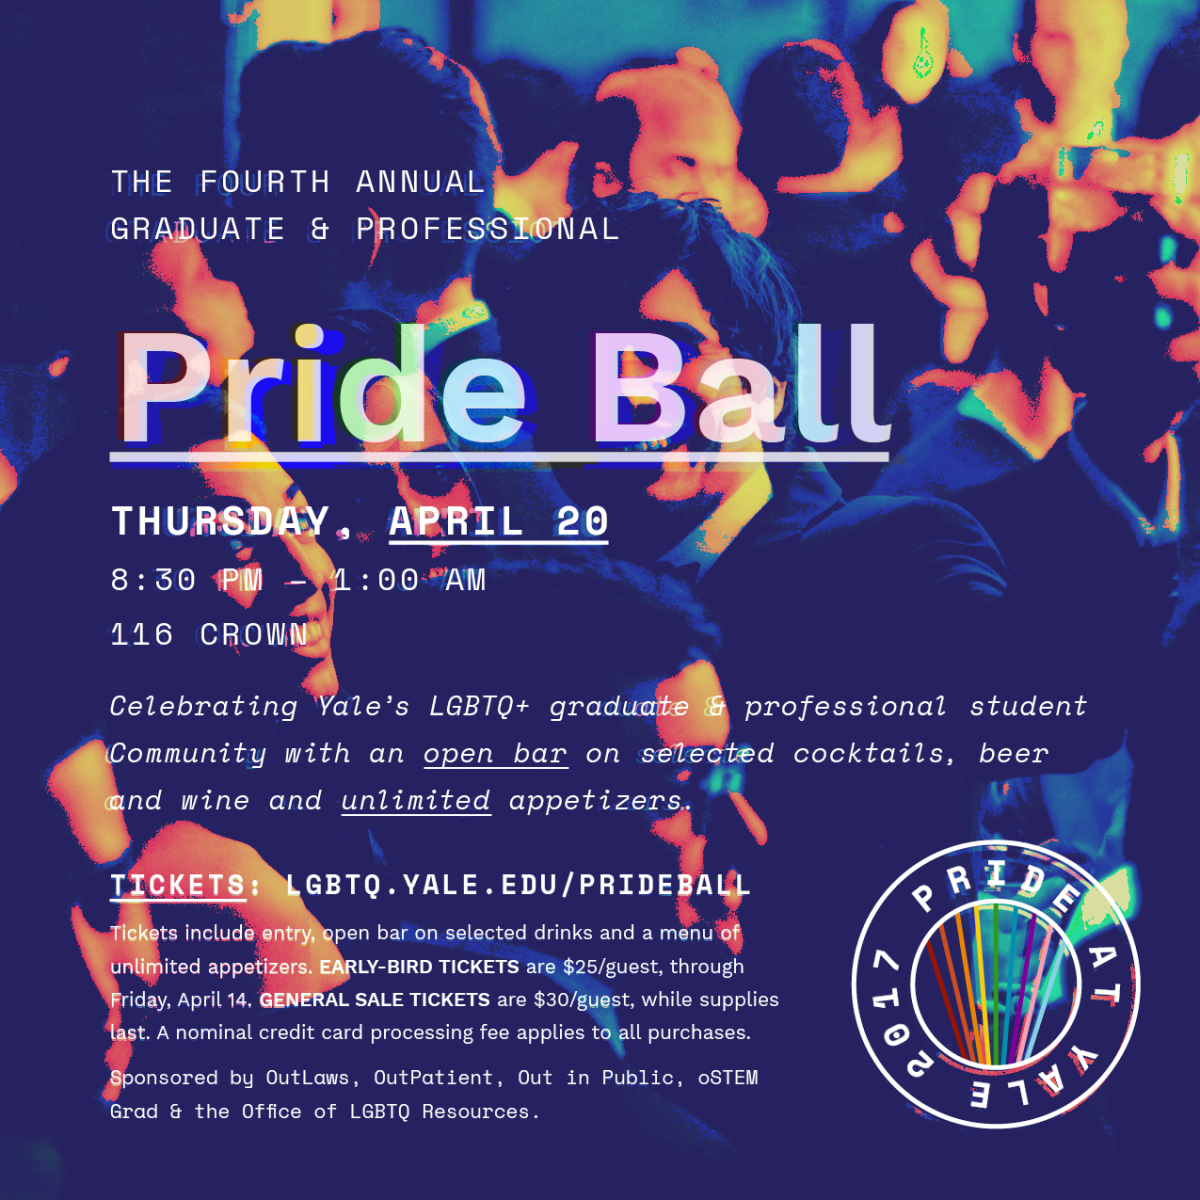 Pride Ball 2017 Flyer